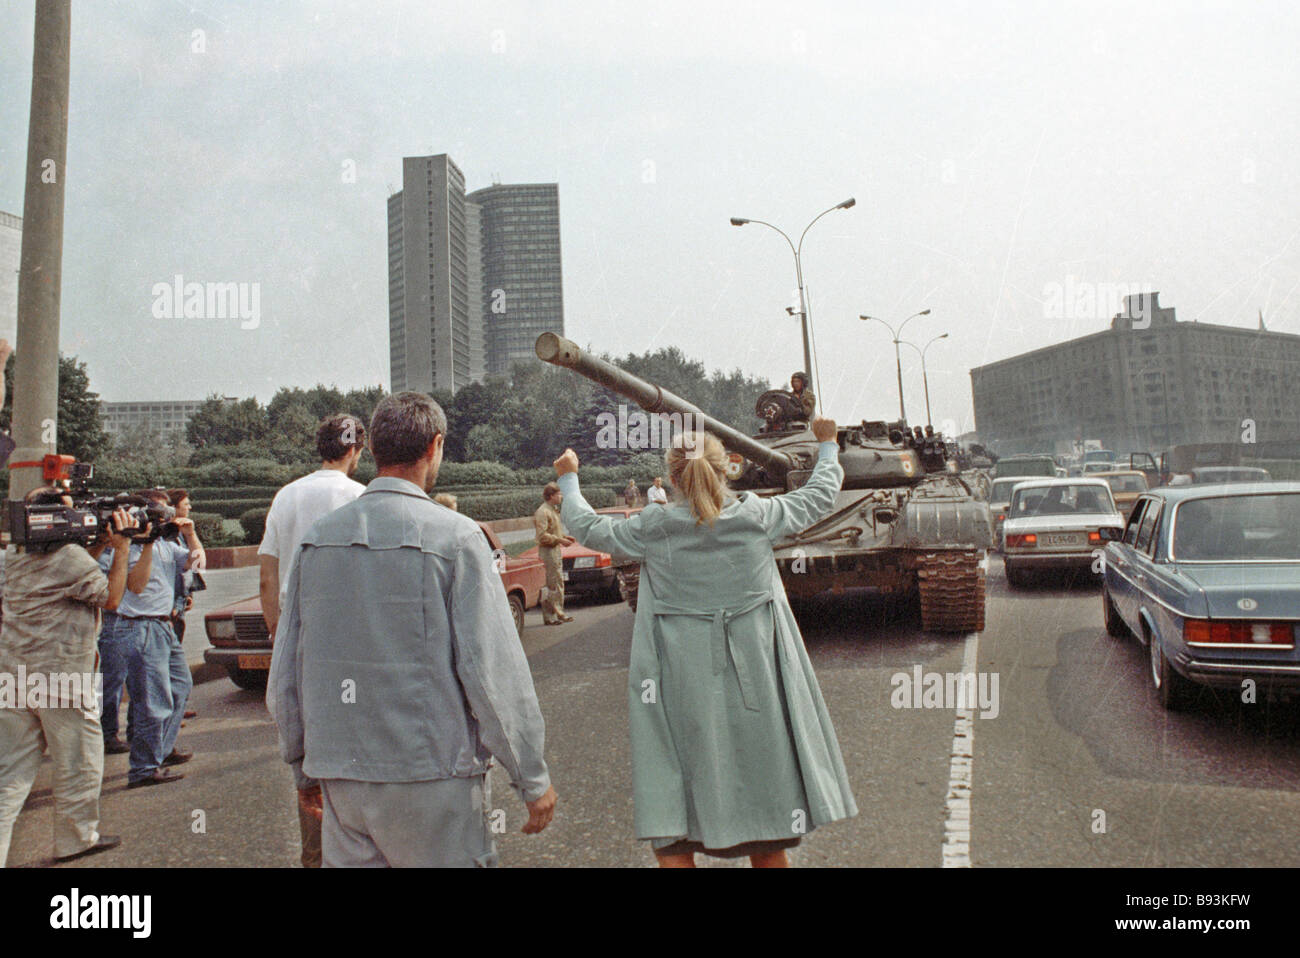 Muscovites block the way for military weaponry during the GKChP coup - Stock Image